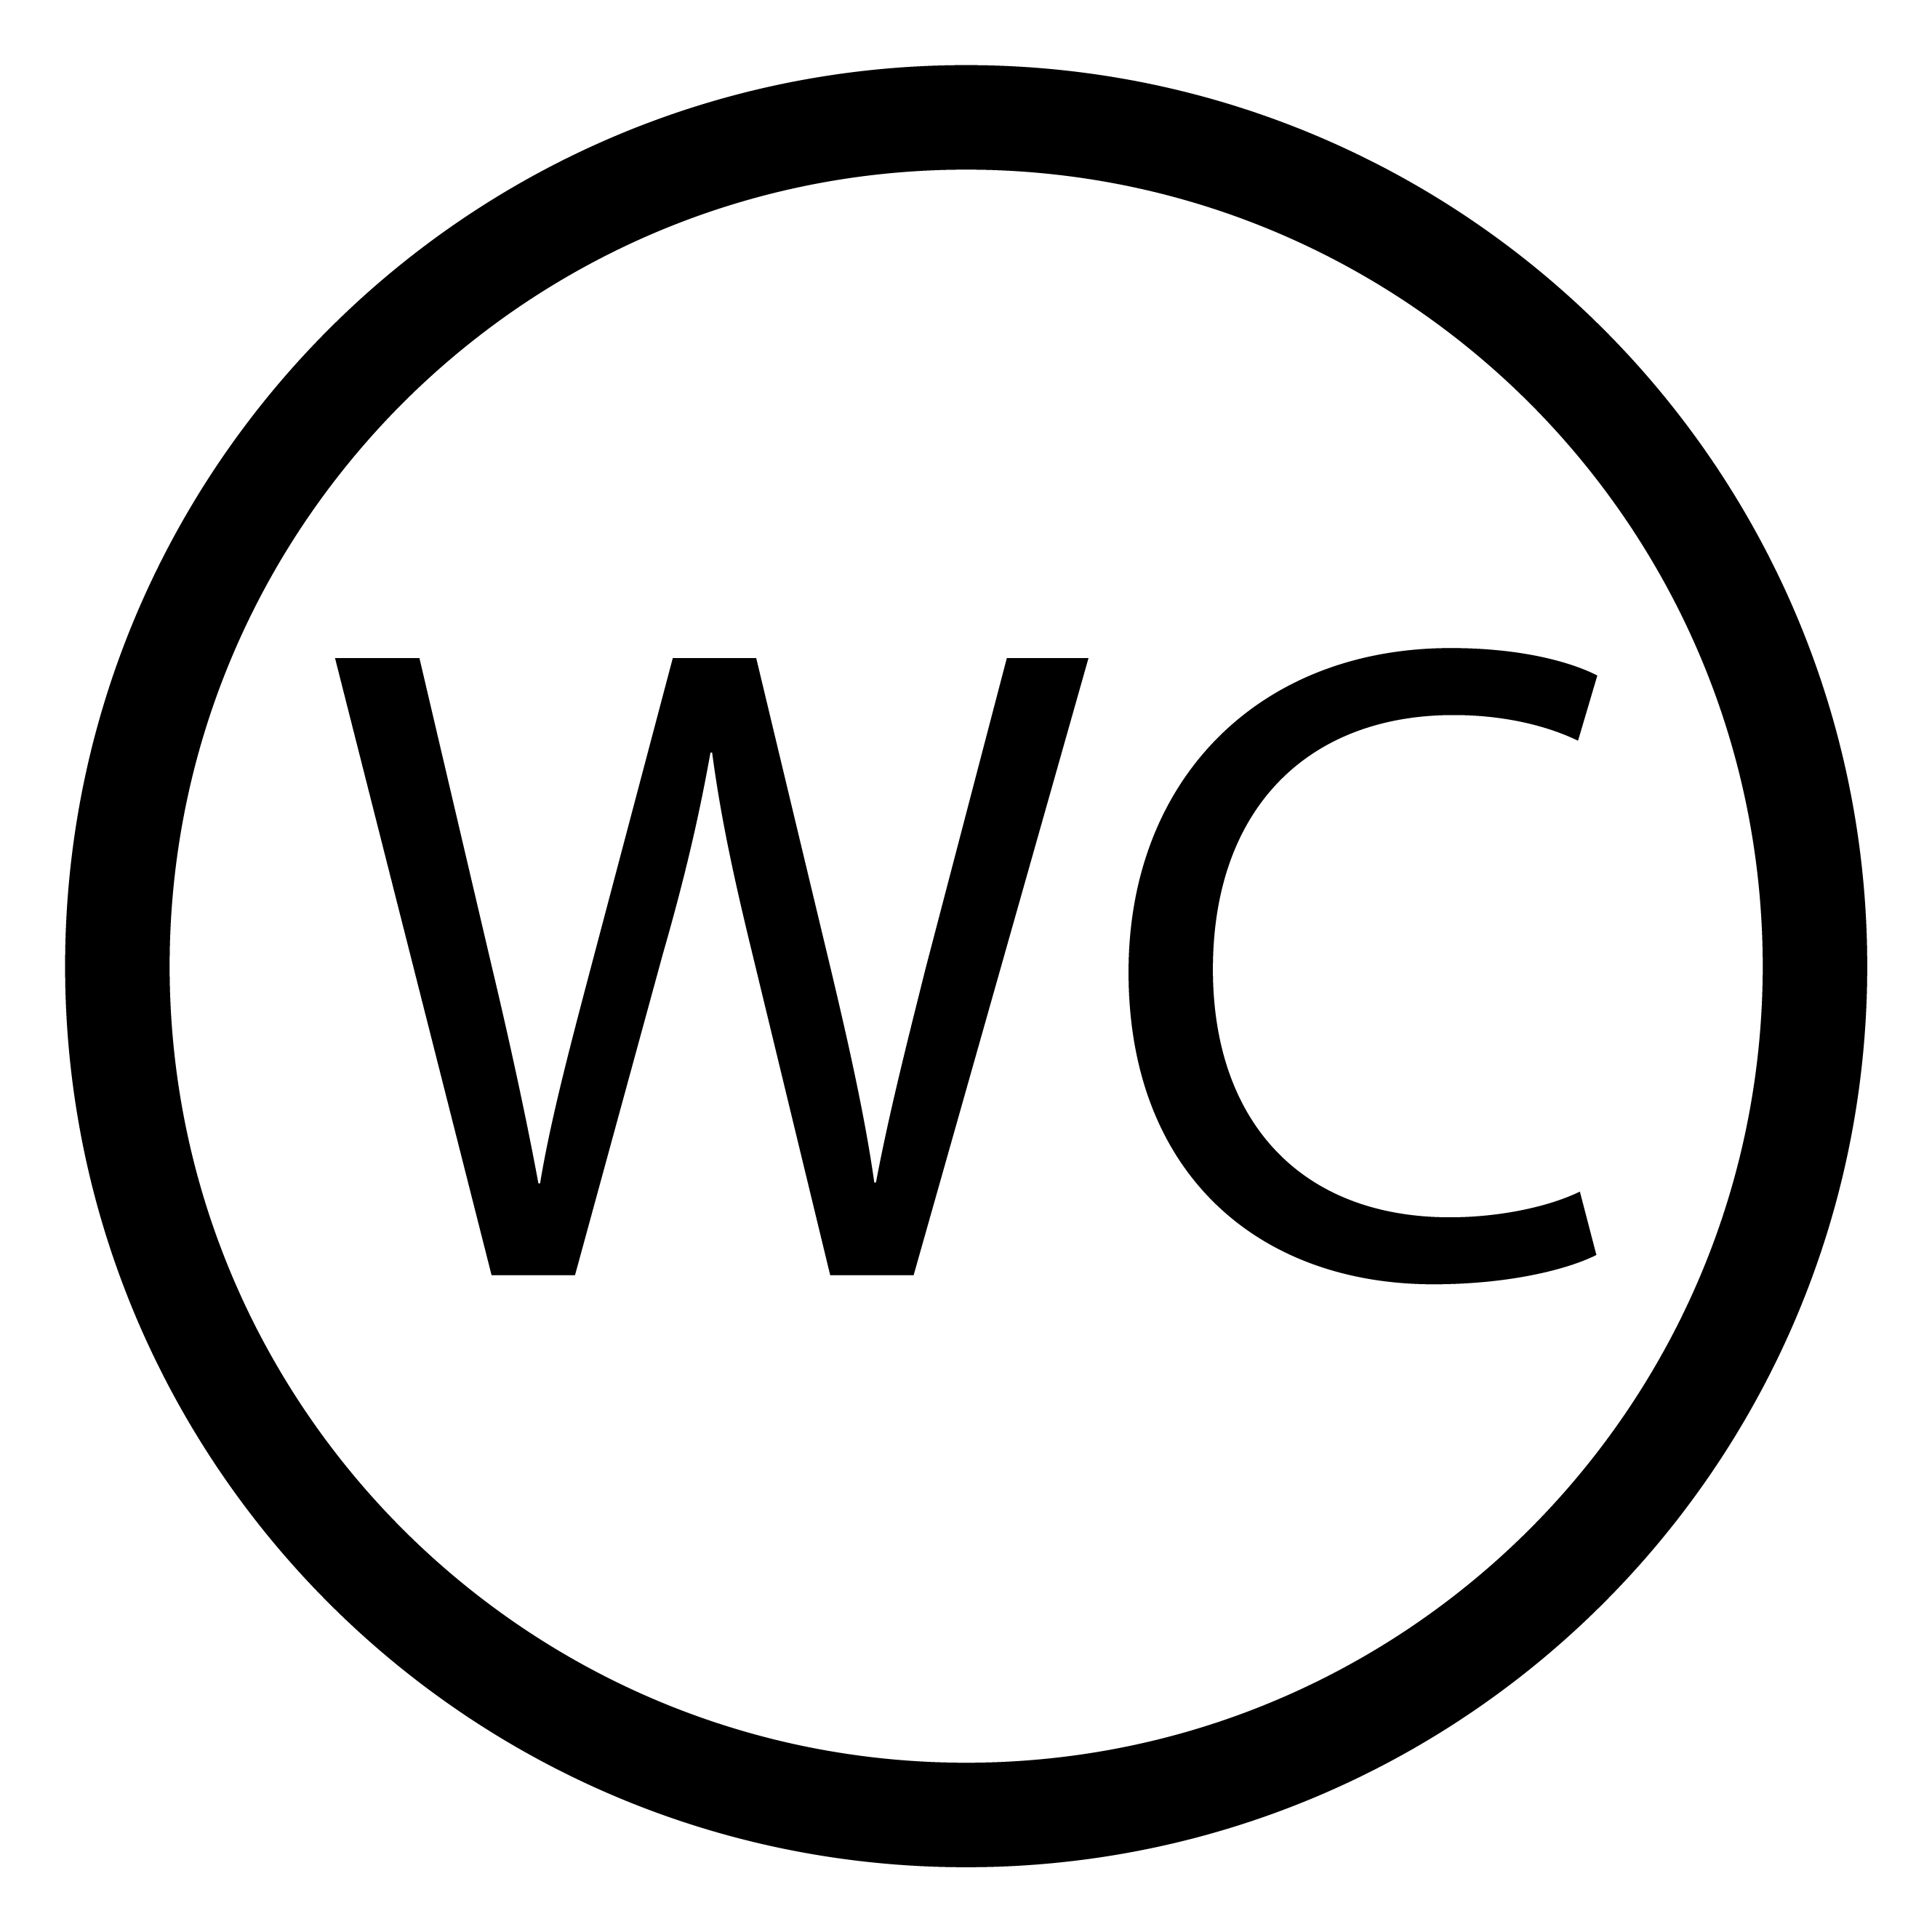 Wc Toilet Icon Black White Vector By 09910190 Thehungryjpeg Com